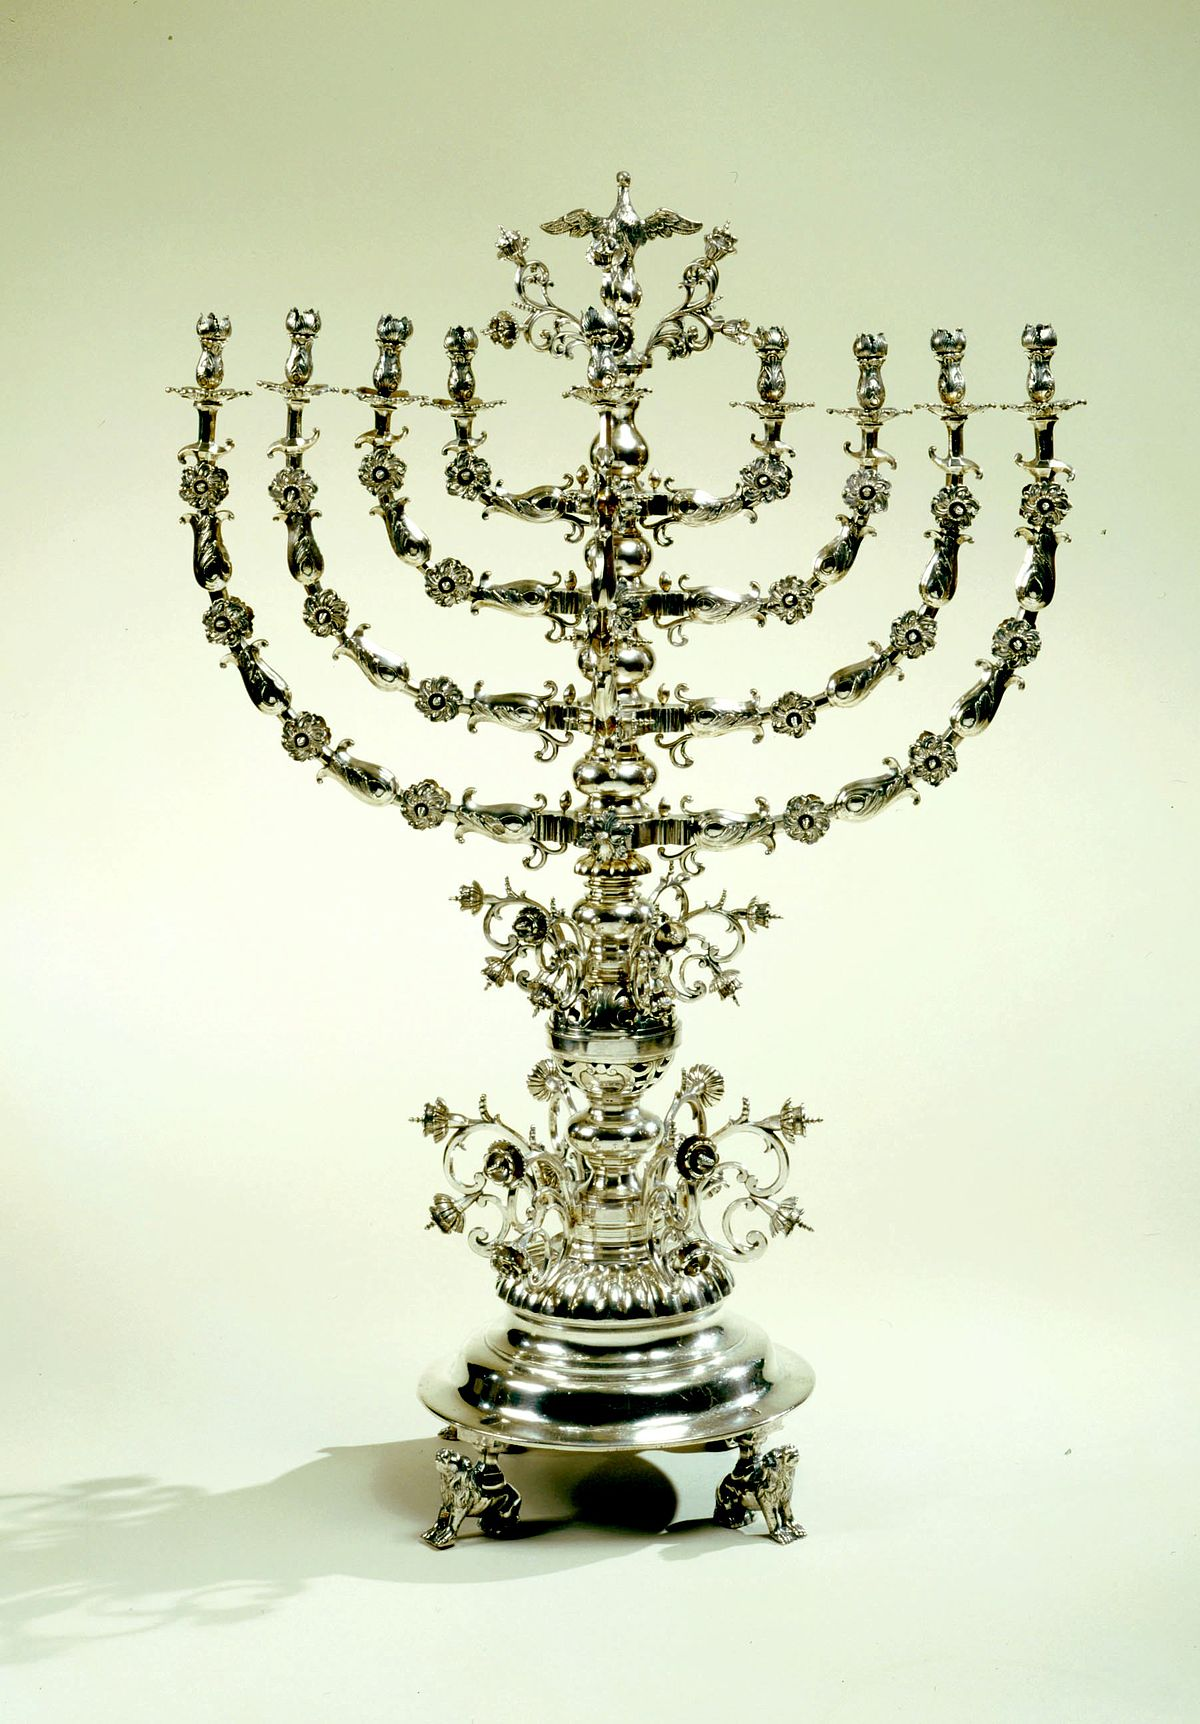 image regarding Hanukkah Prayer Printable known as Menorah (Hanukkah) - Wikipedia